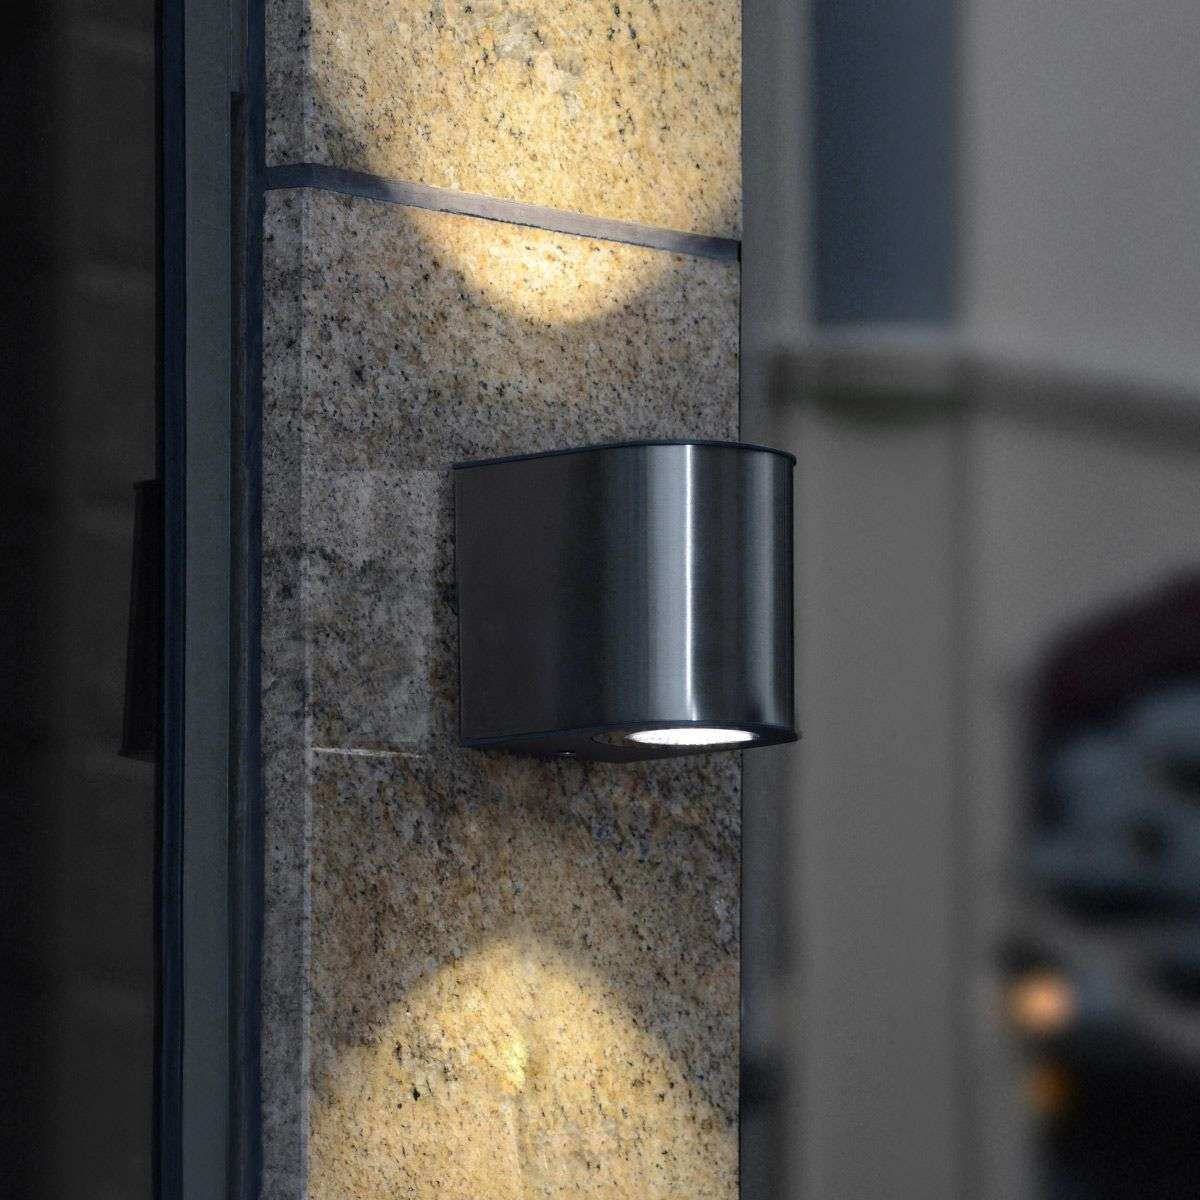 Stylish gemini ip54 led exterior wall light lights stylish gemini ip54 led exterior wall light mozeypictures Images